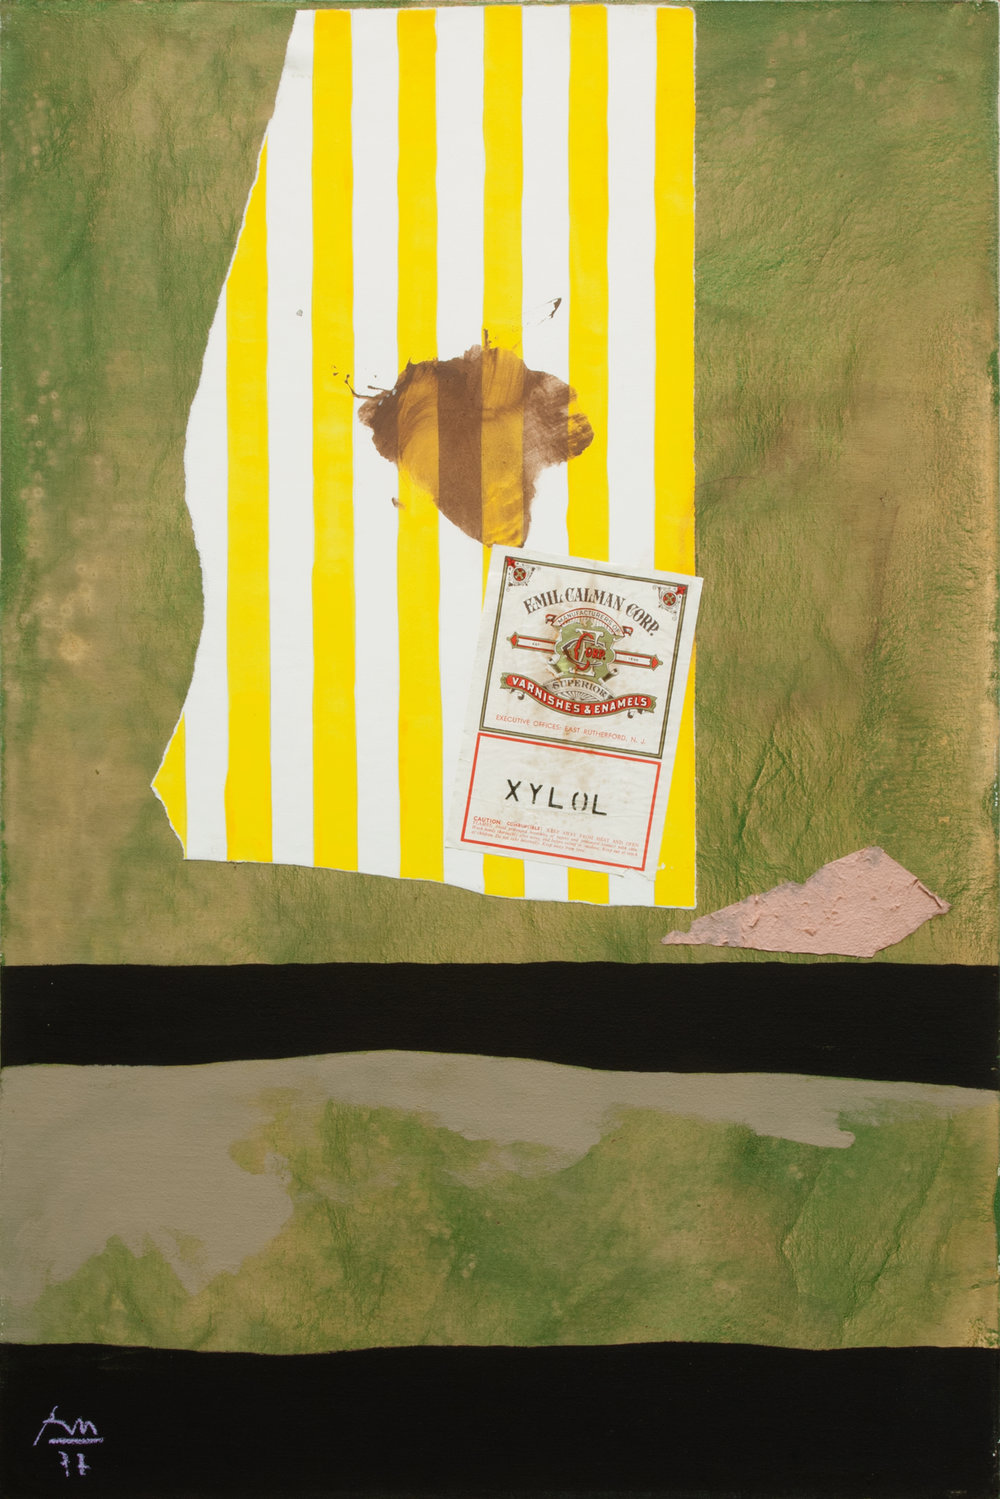 robetn motherwell, Xylol, 1977, Acrylic and pasted papers and graphite on canvas mounted on board, 88.9 x 58.42 cms